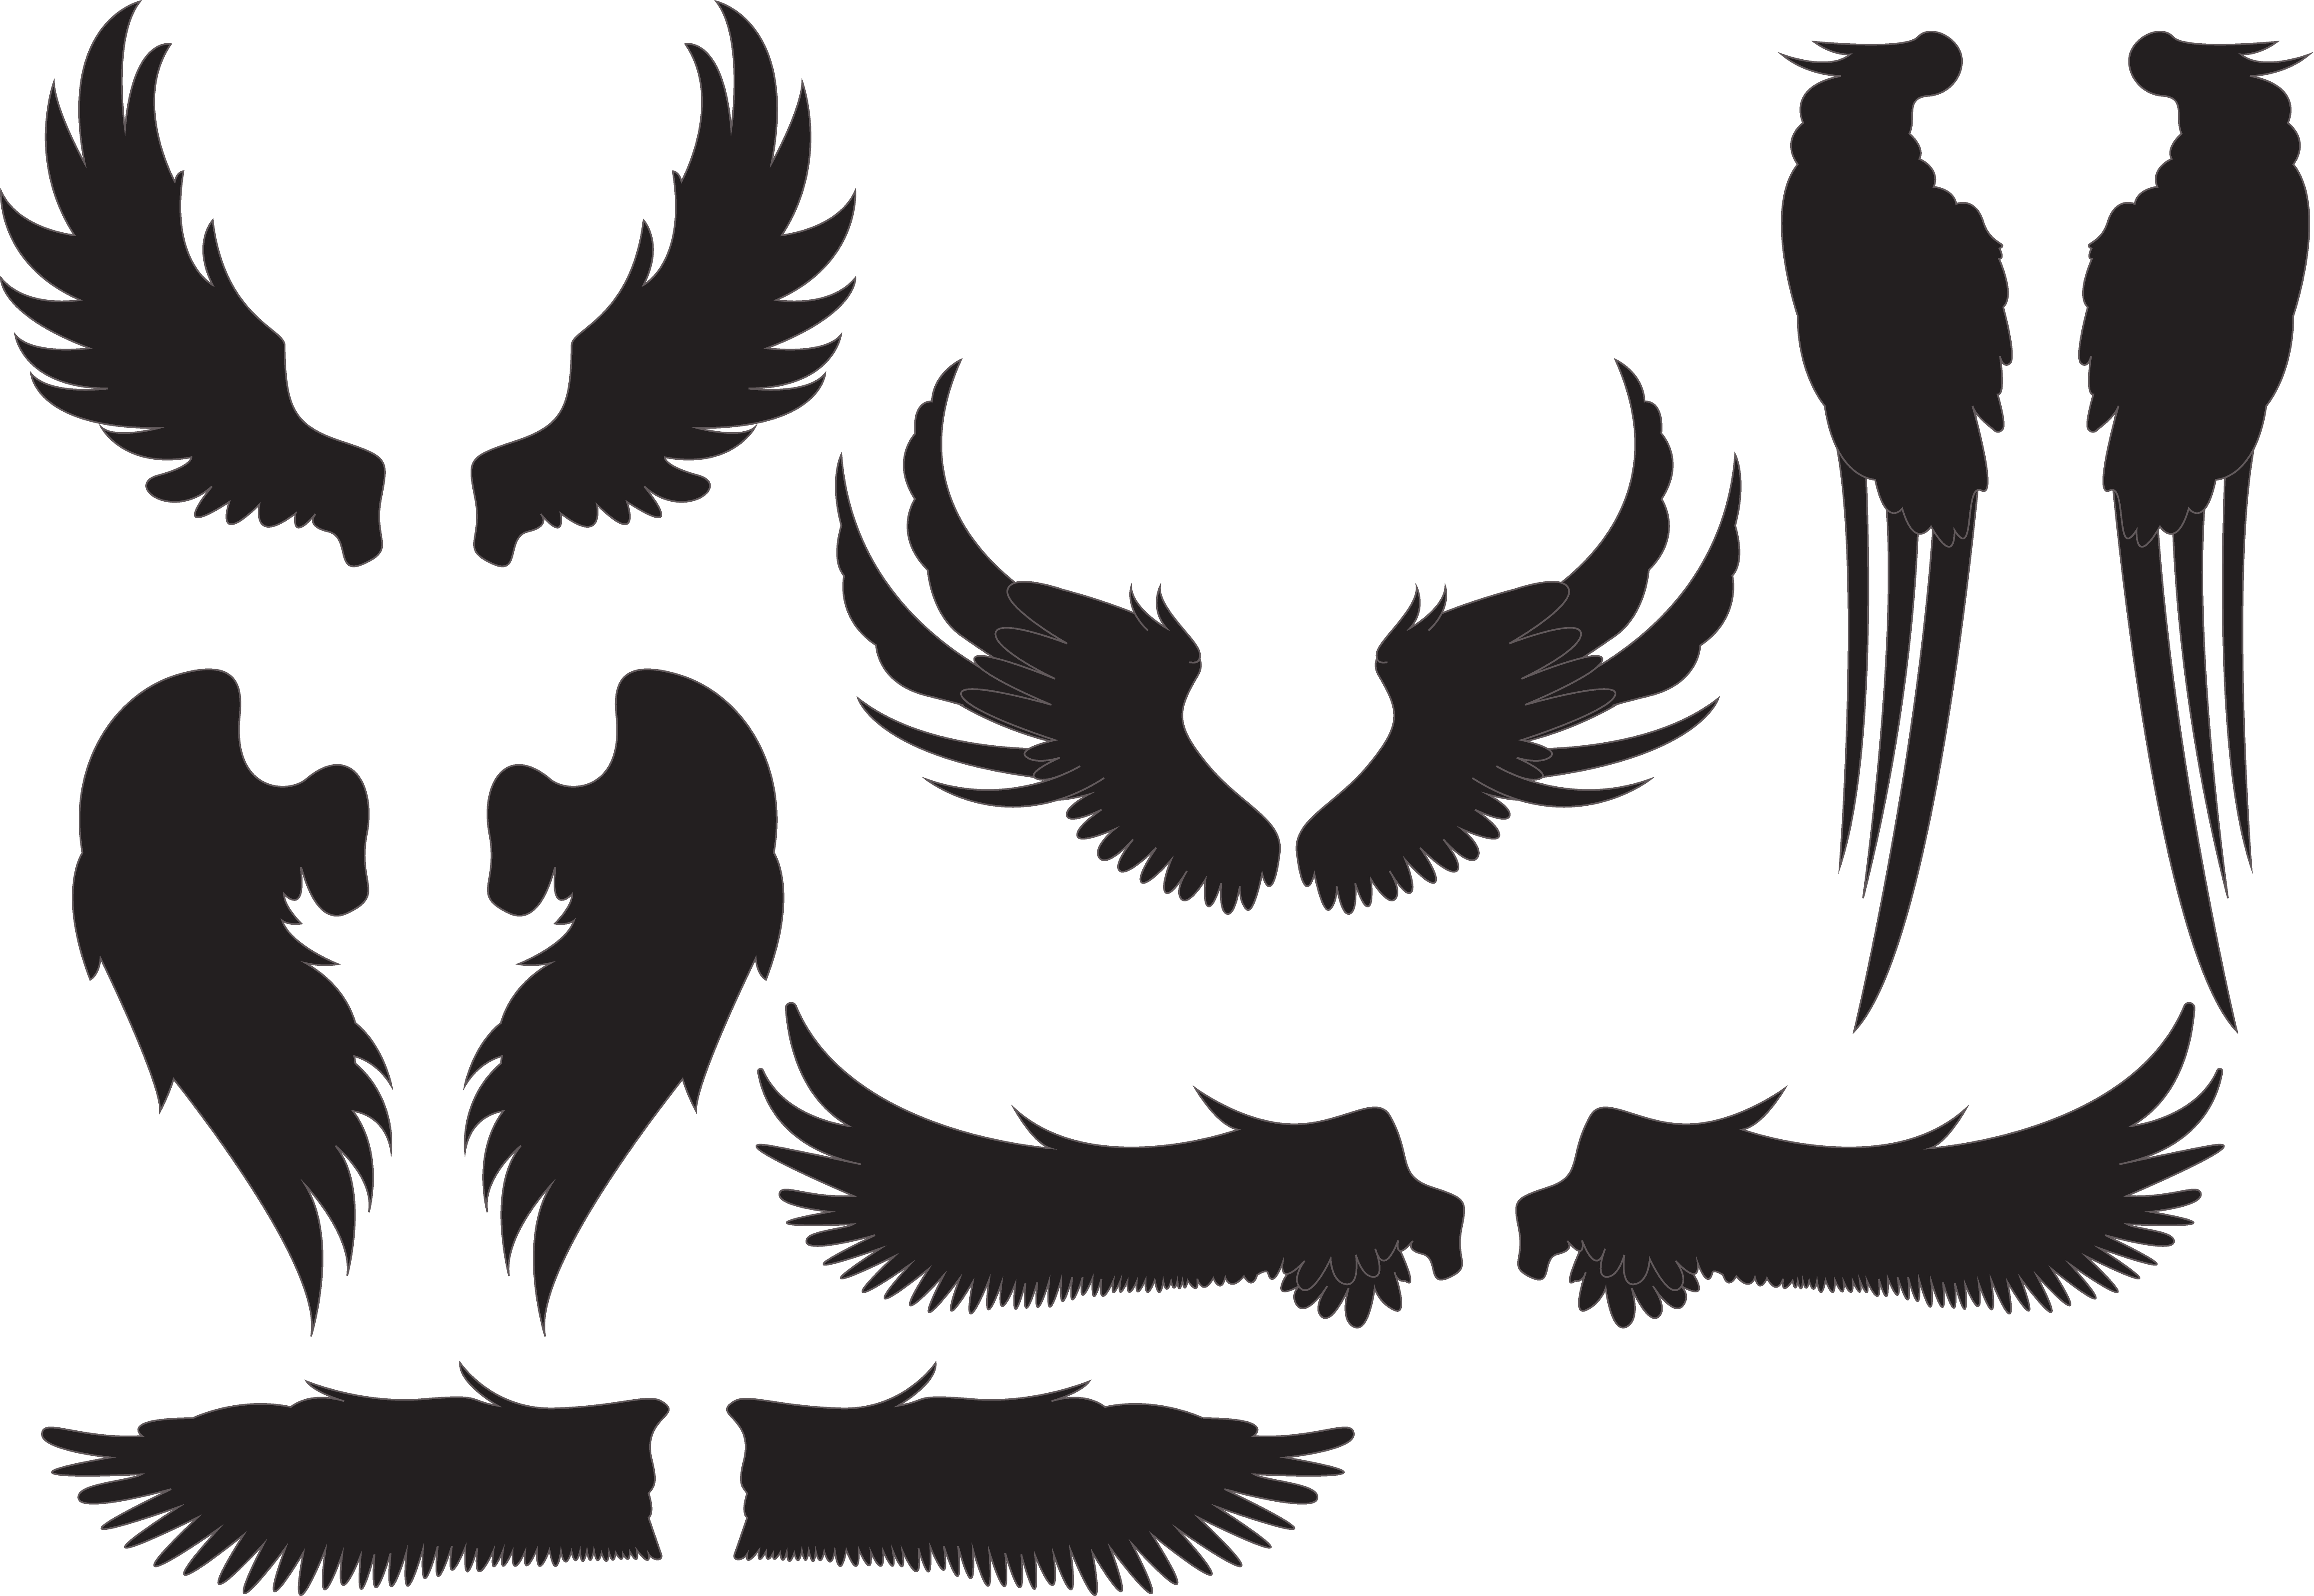 Silhouette at getdrawings com. Wing clipart stencil